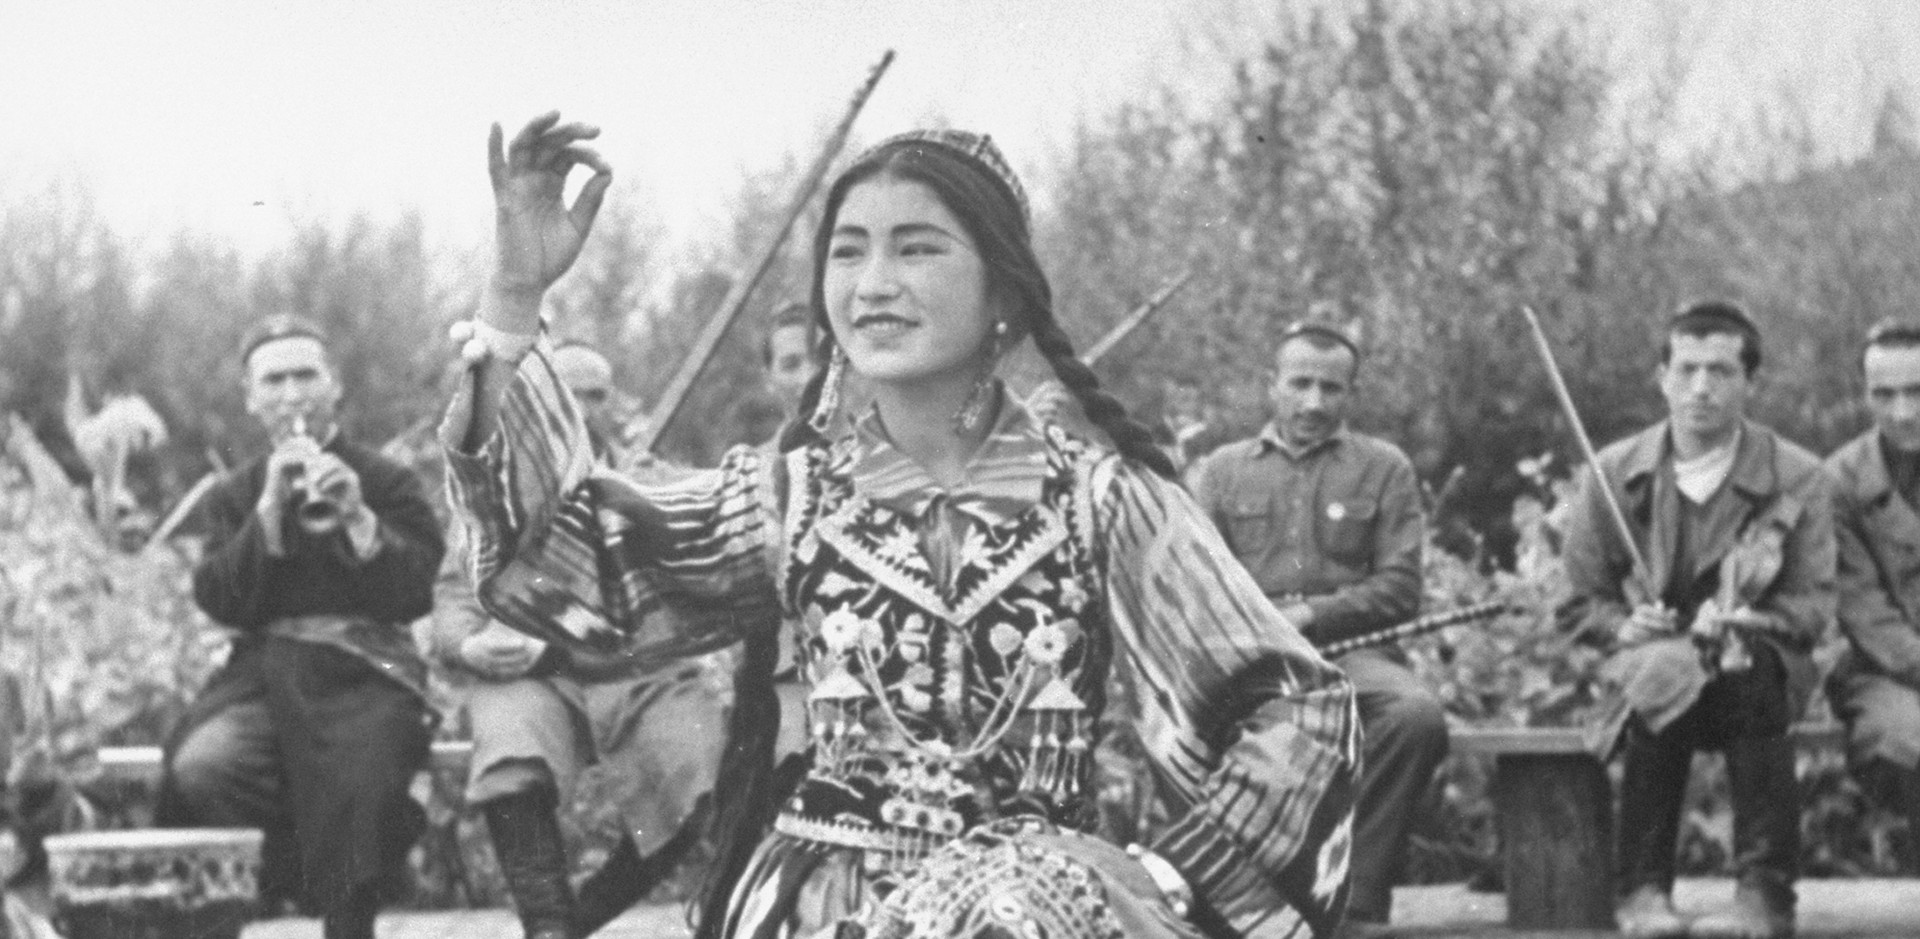 A photograph of a Uighur dancer performing to music